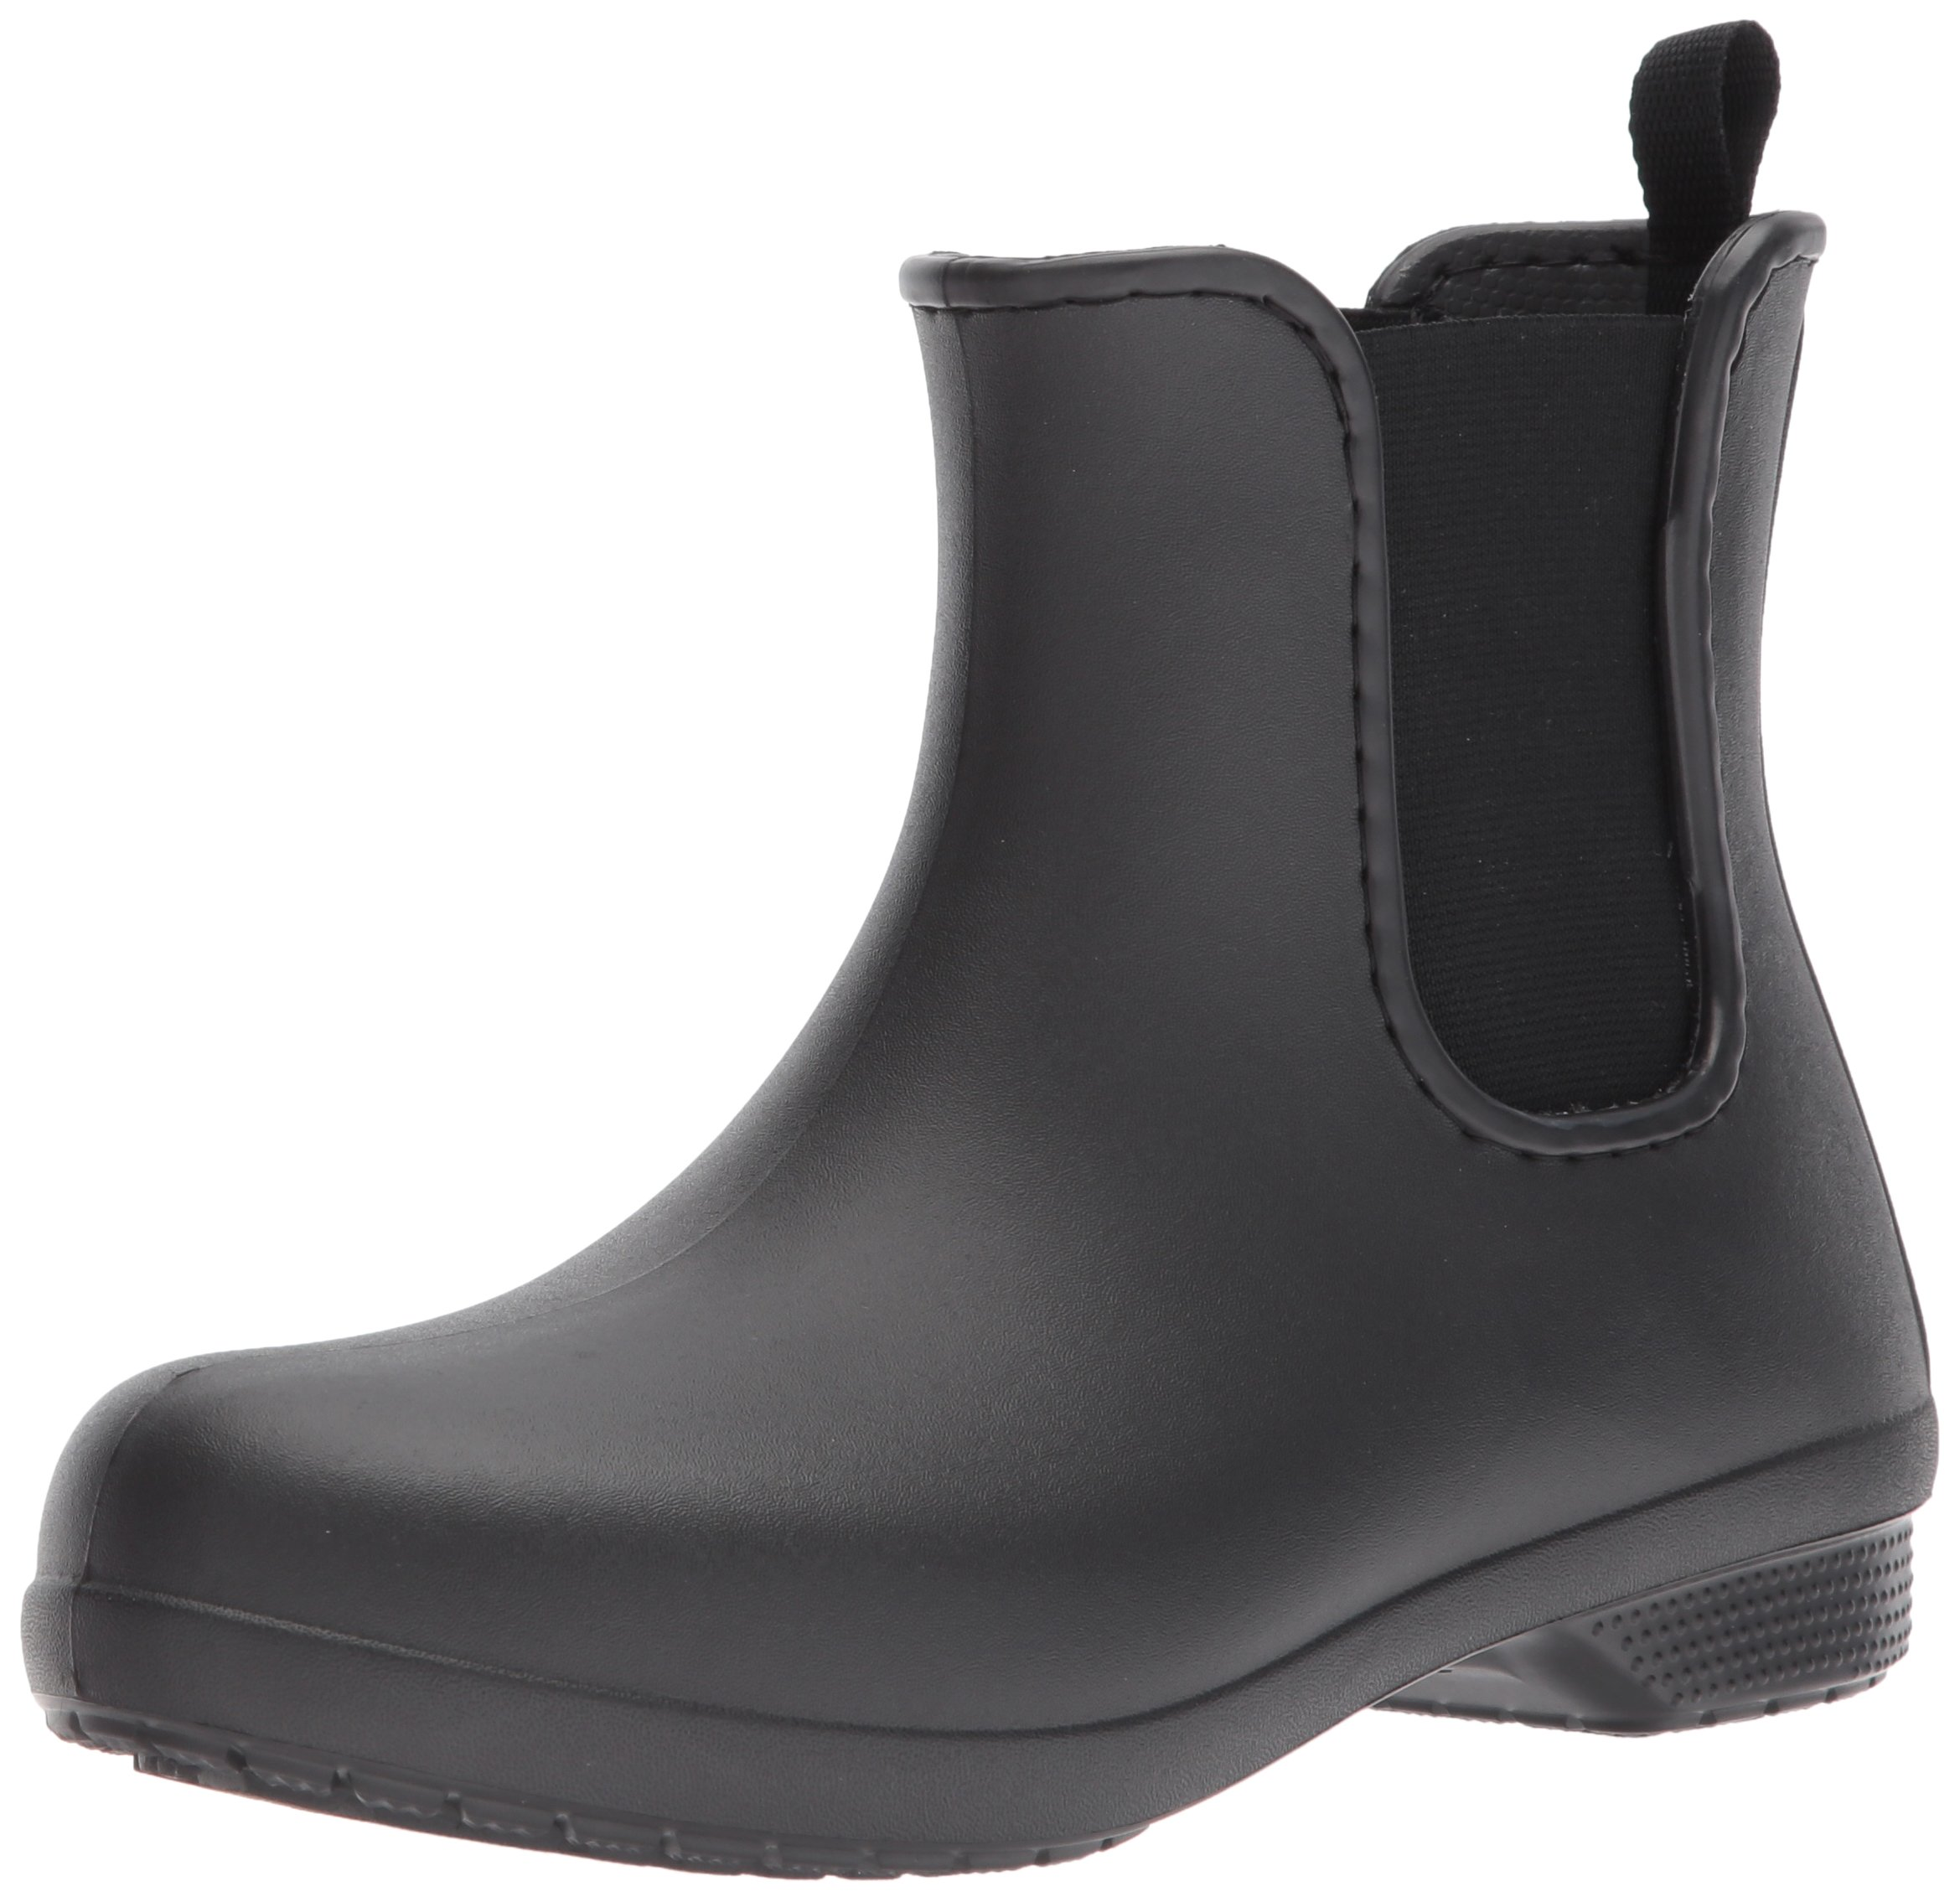 Crocs Women's Freesail Chelsea Rain Boot, Black/Black, 11 M US